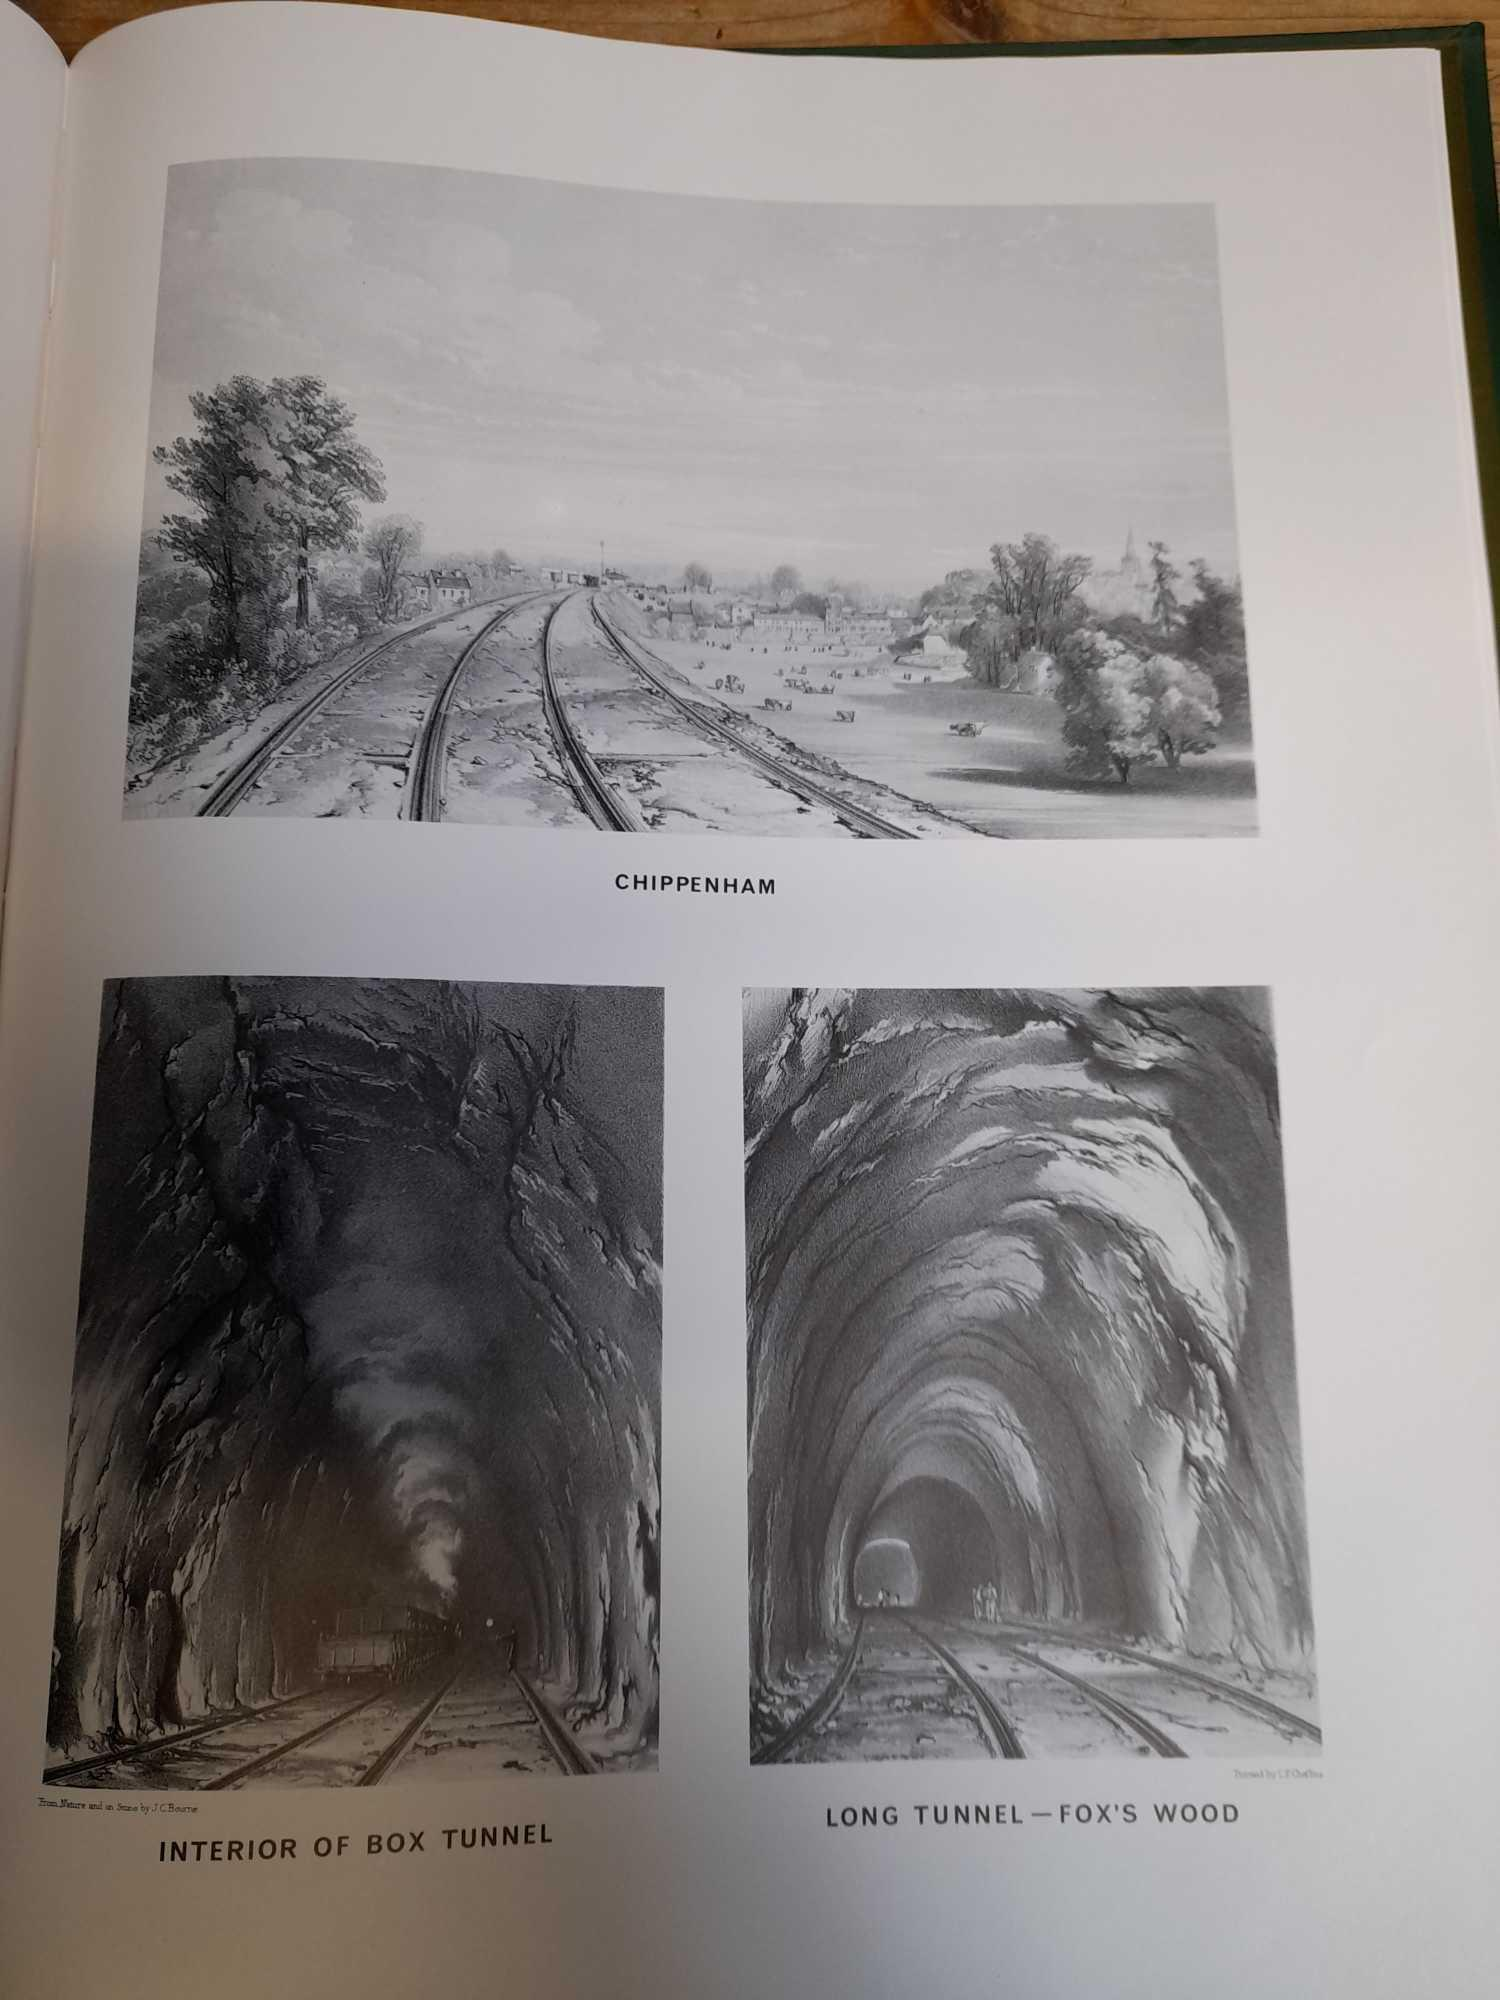 BOURNES GREAT WESTERN RAILWAY BOOK COPY 1 OF 500 - Image 5 of 9